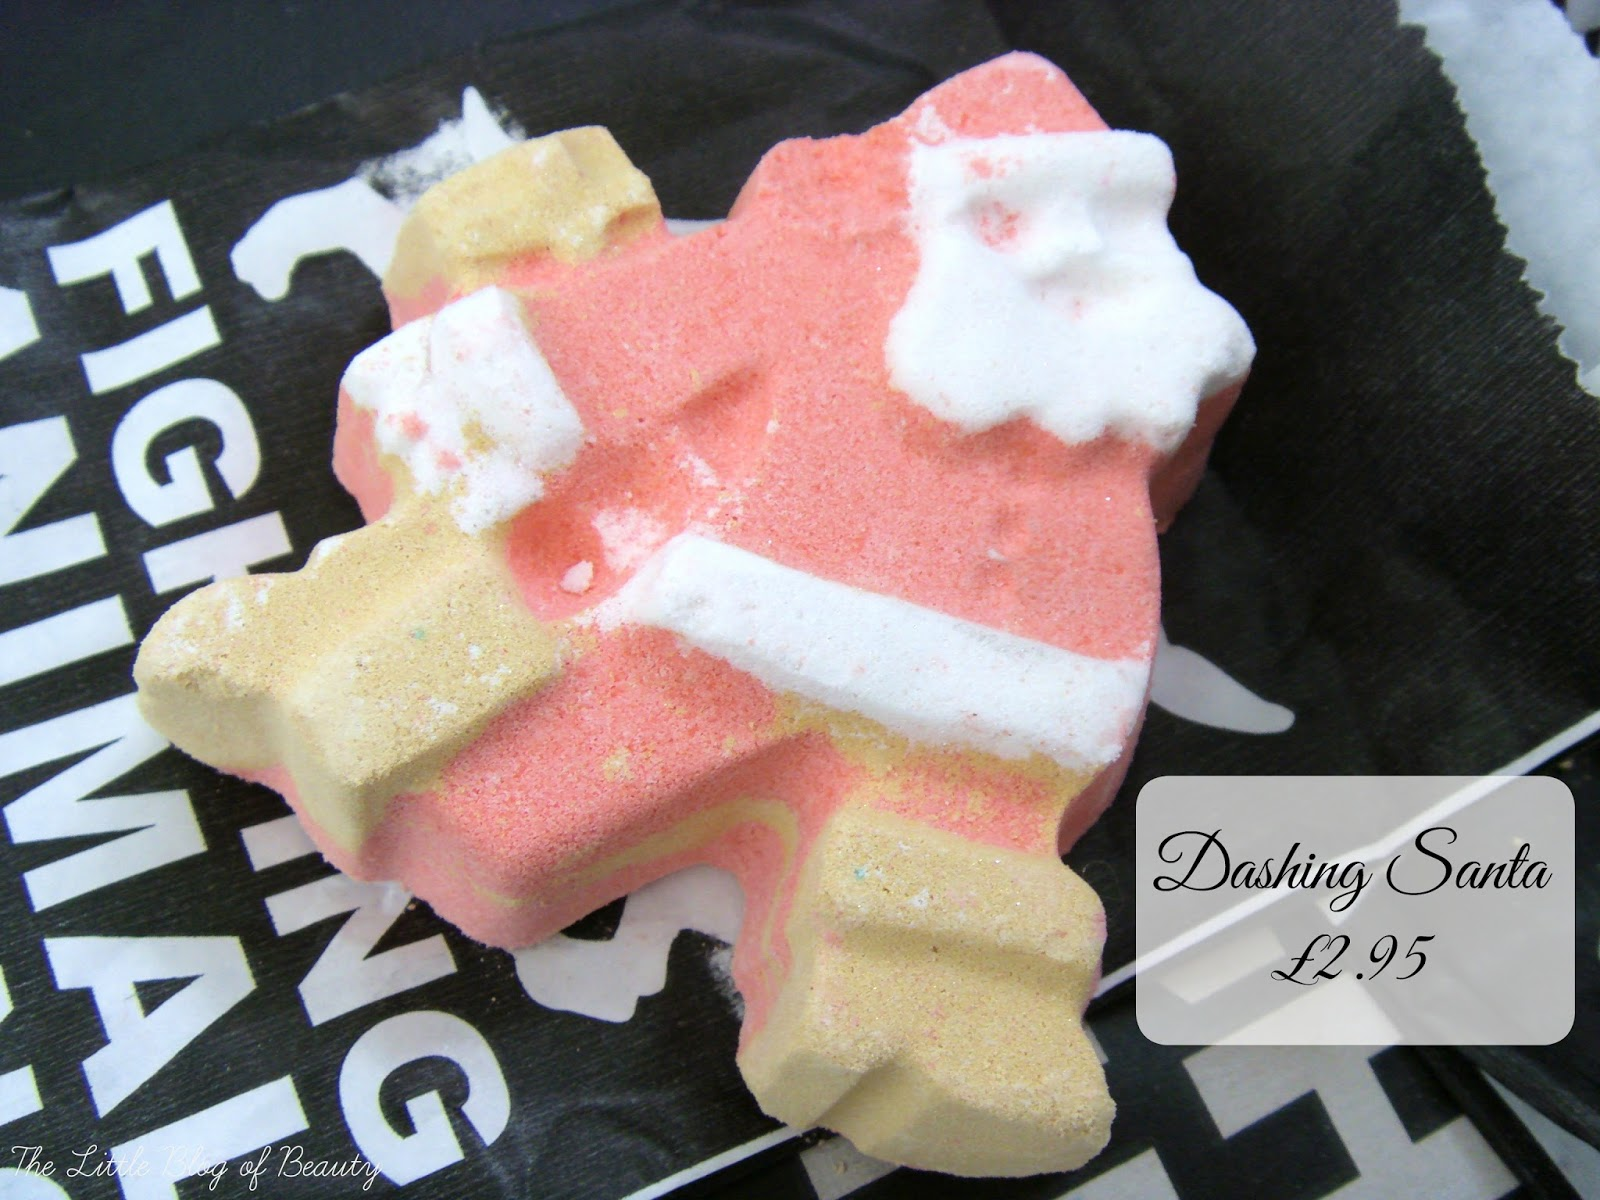 Lush Dashing Santa Christmas bath bomb